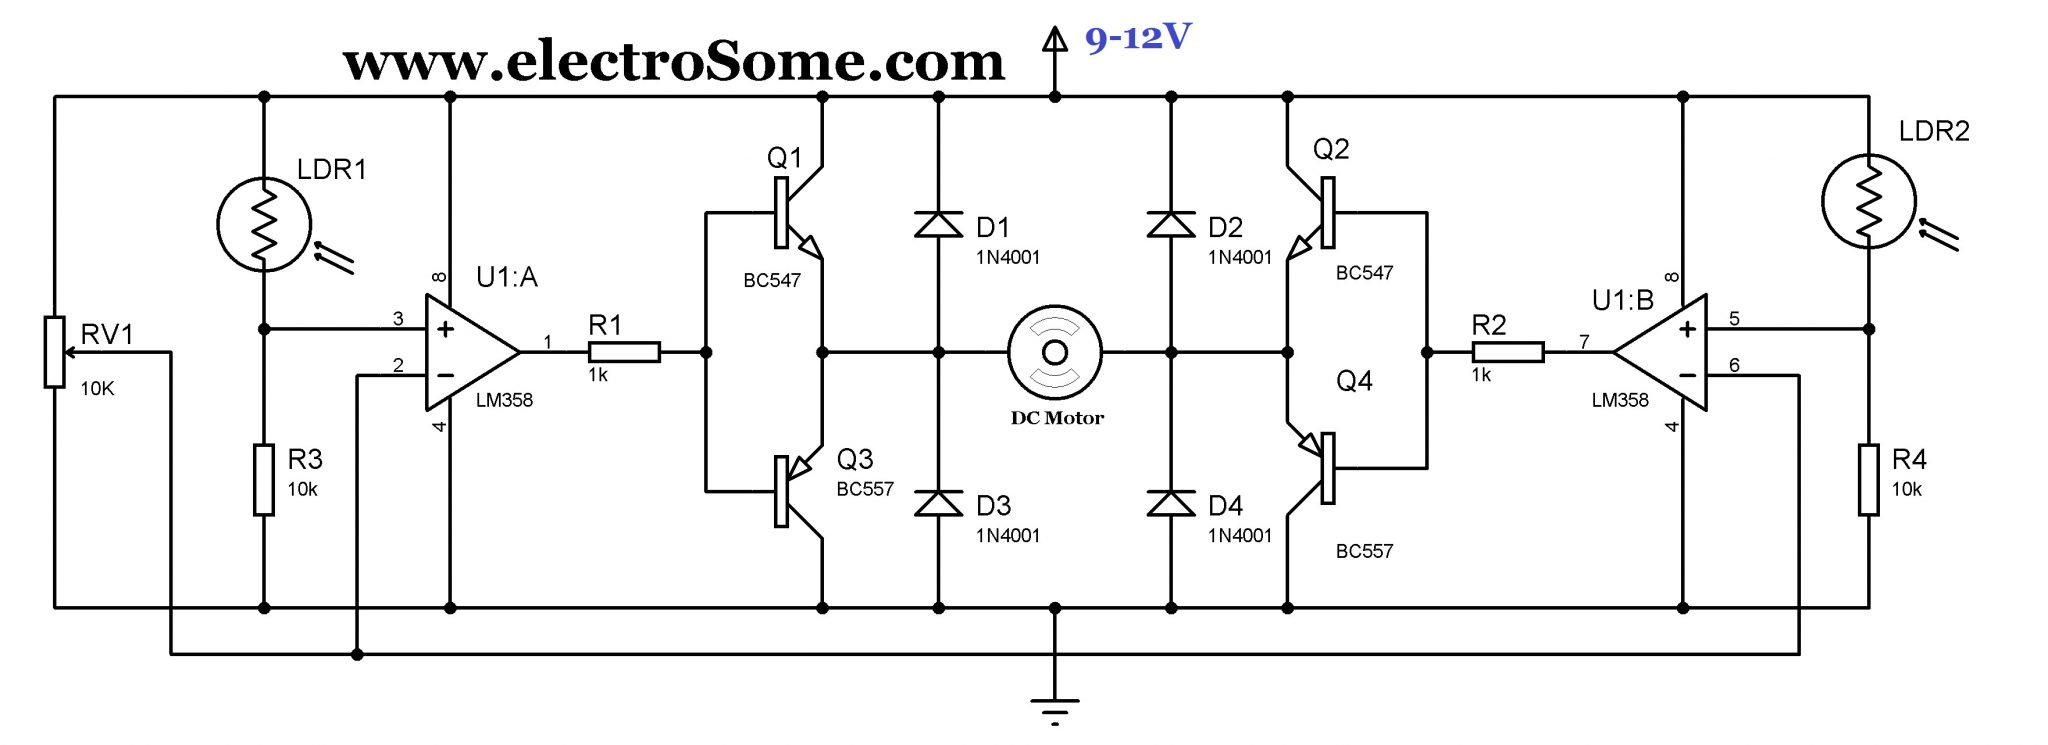 Simple Solar Tracker Circuit Using Lm358 Sound Detector Lm324 Diagram